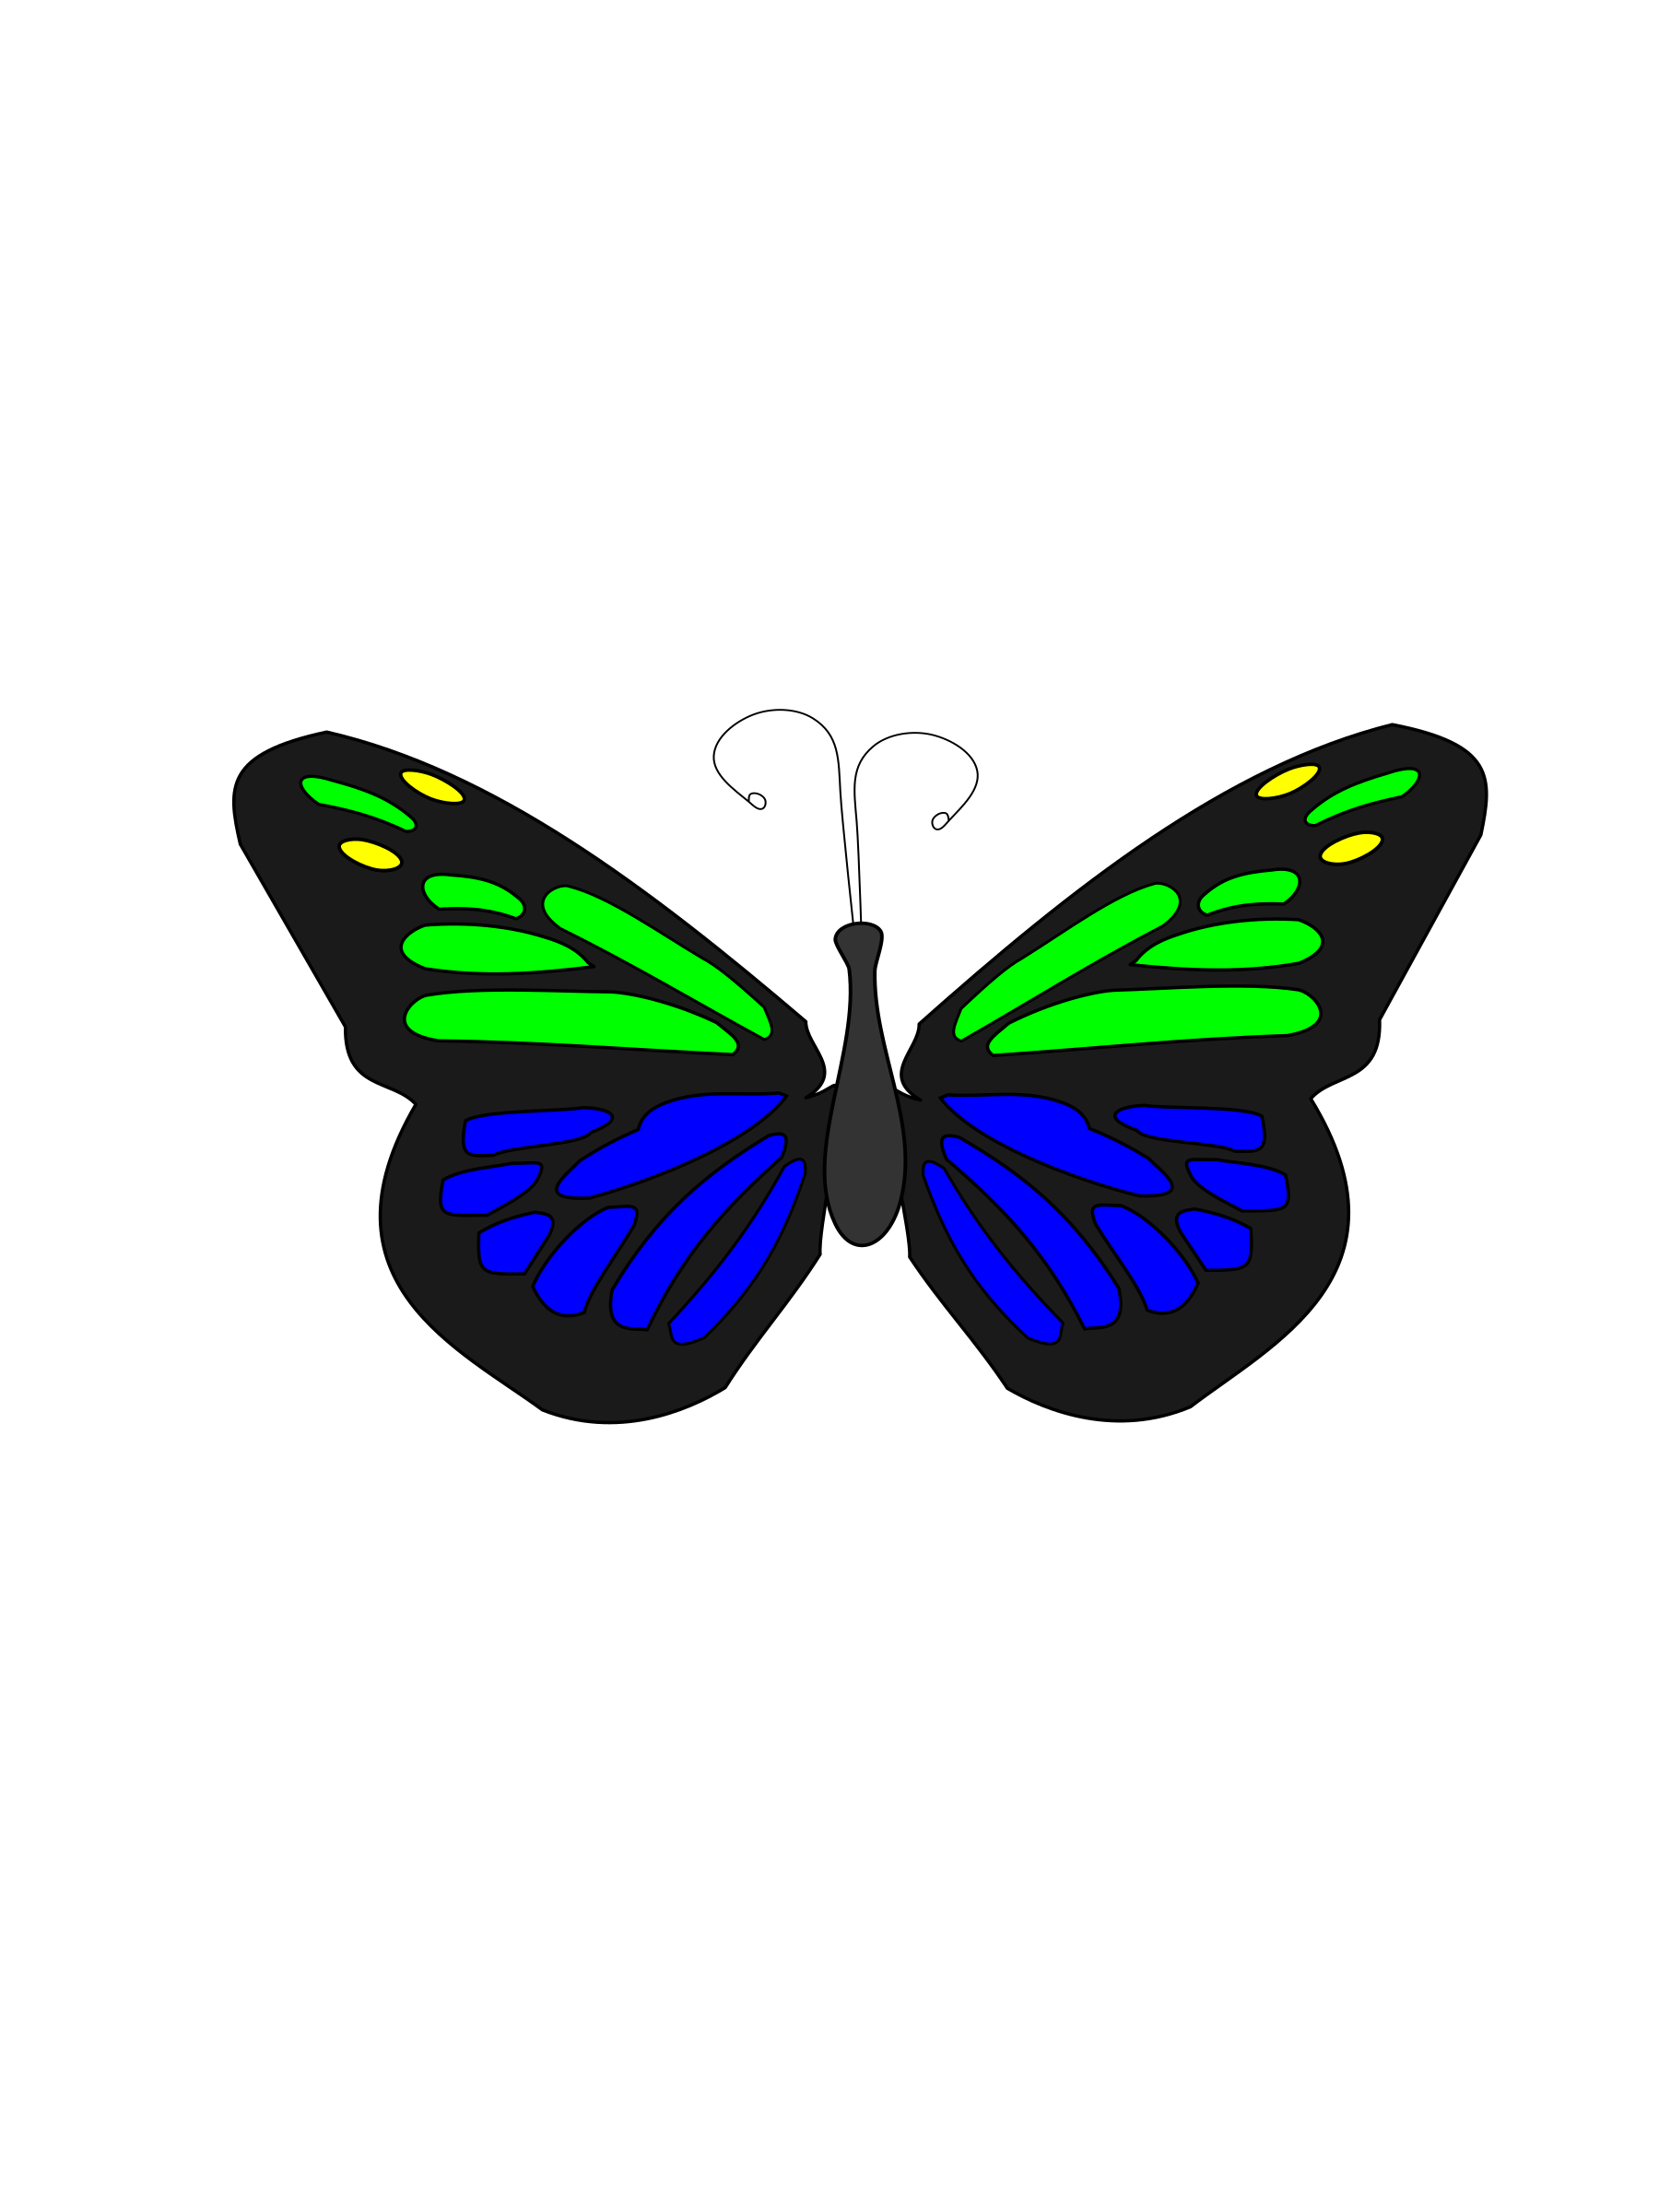 Floating butterfly animation big. Moth clipart animated